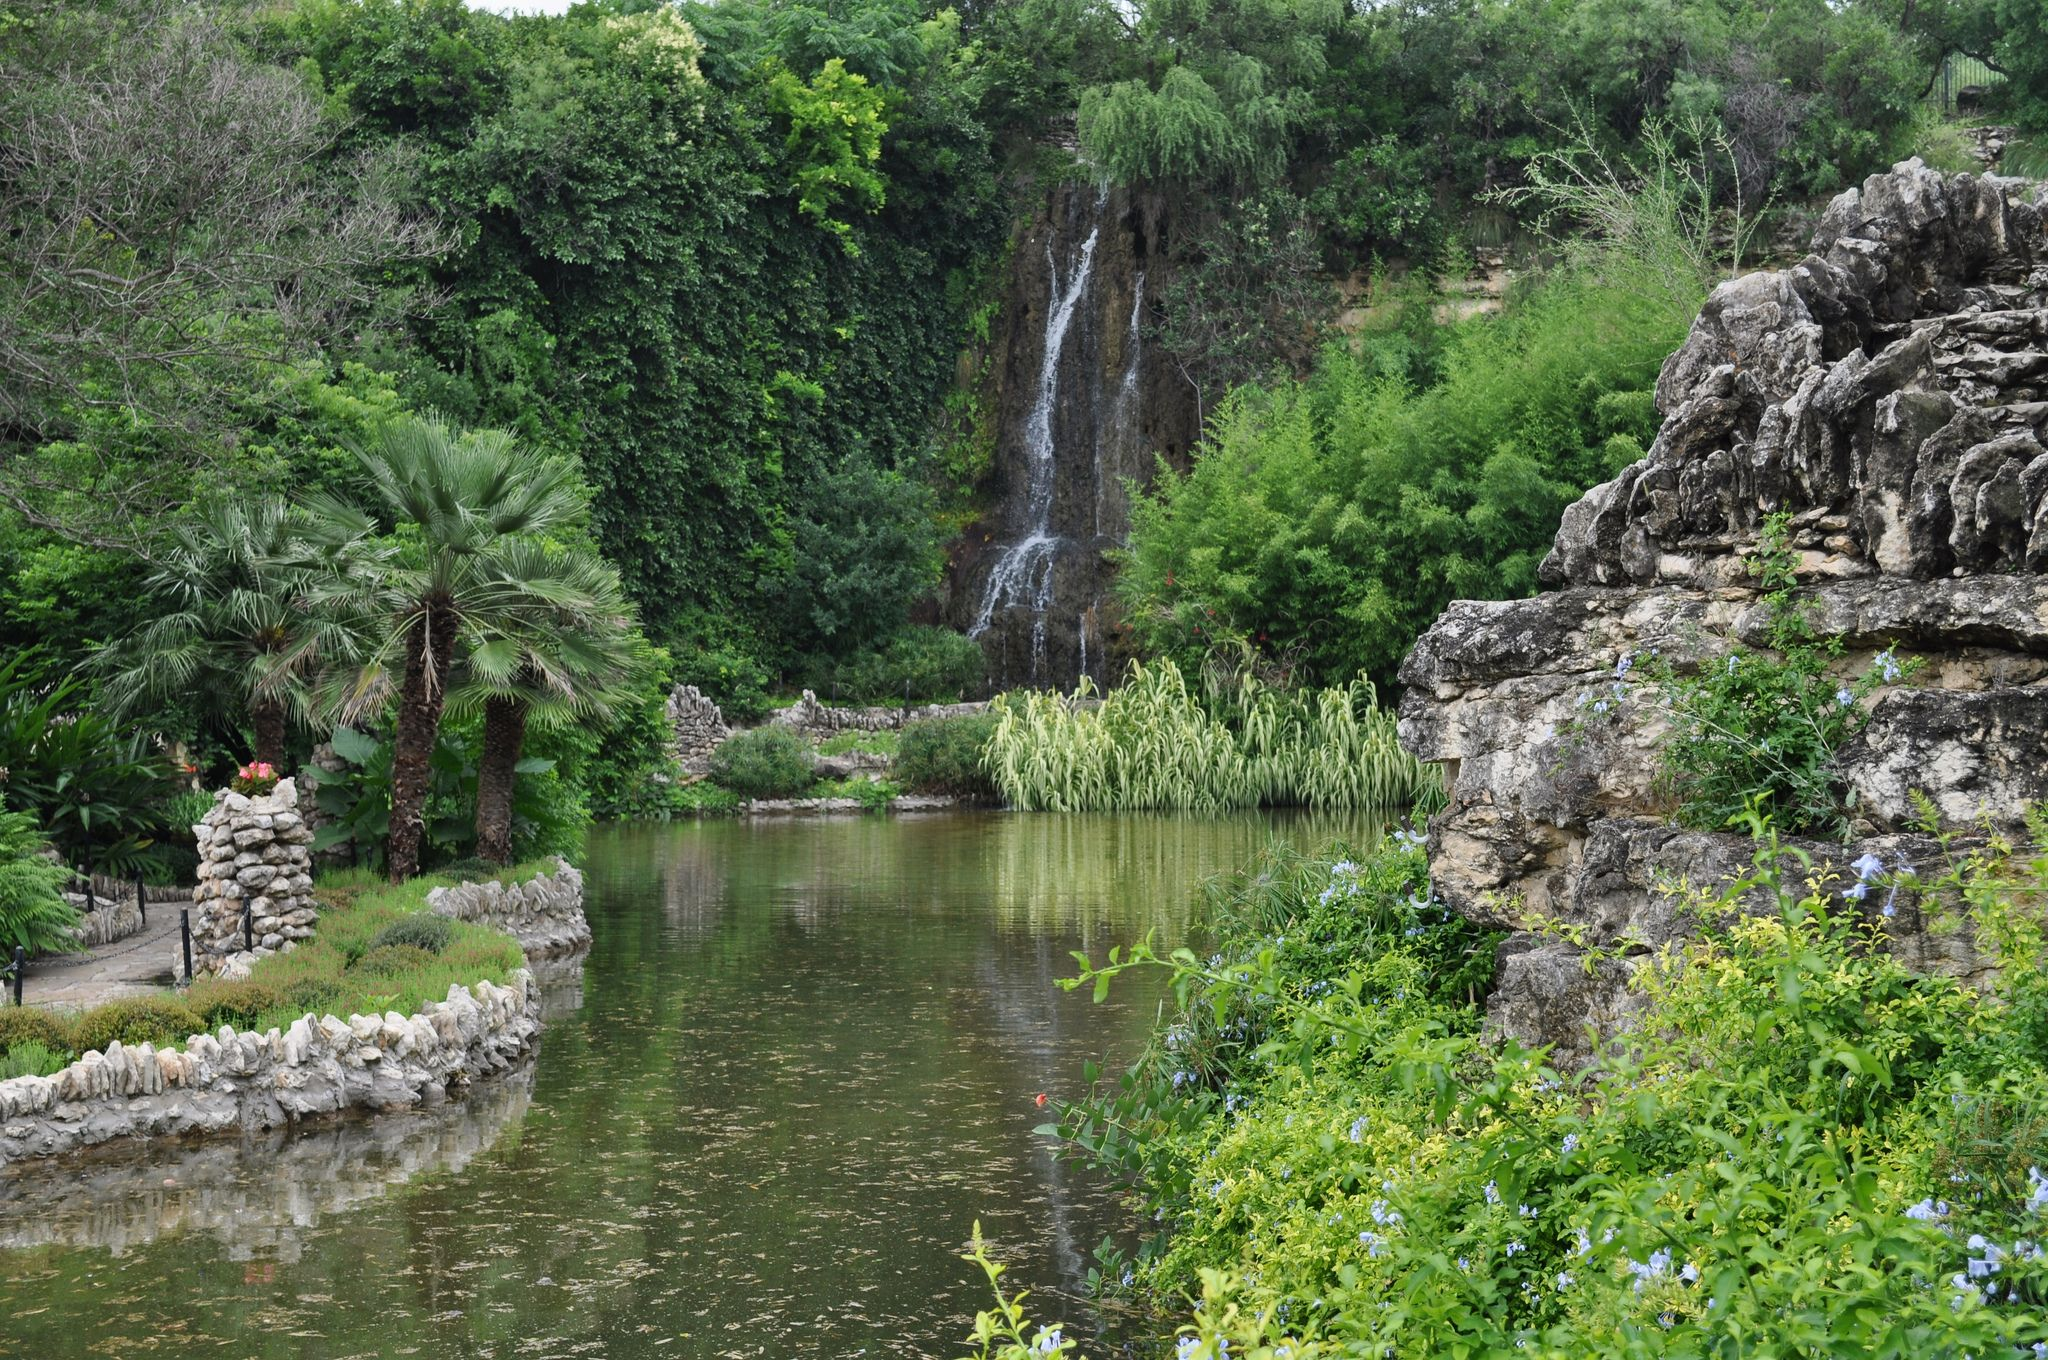 I sat in a quiet corner of the Tea Garden and just sat quietly, the sounds of the waterfall and birds chirping was soothing to the soul.